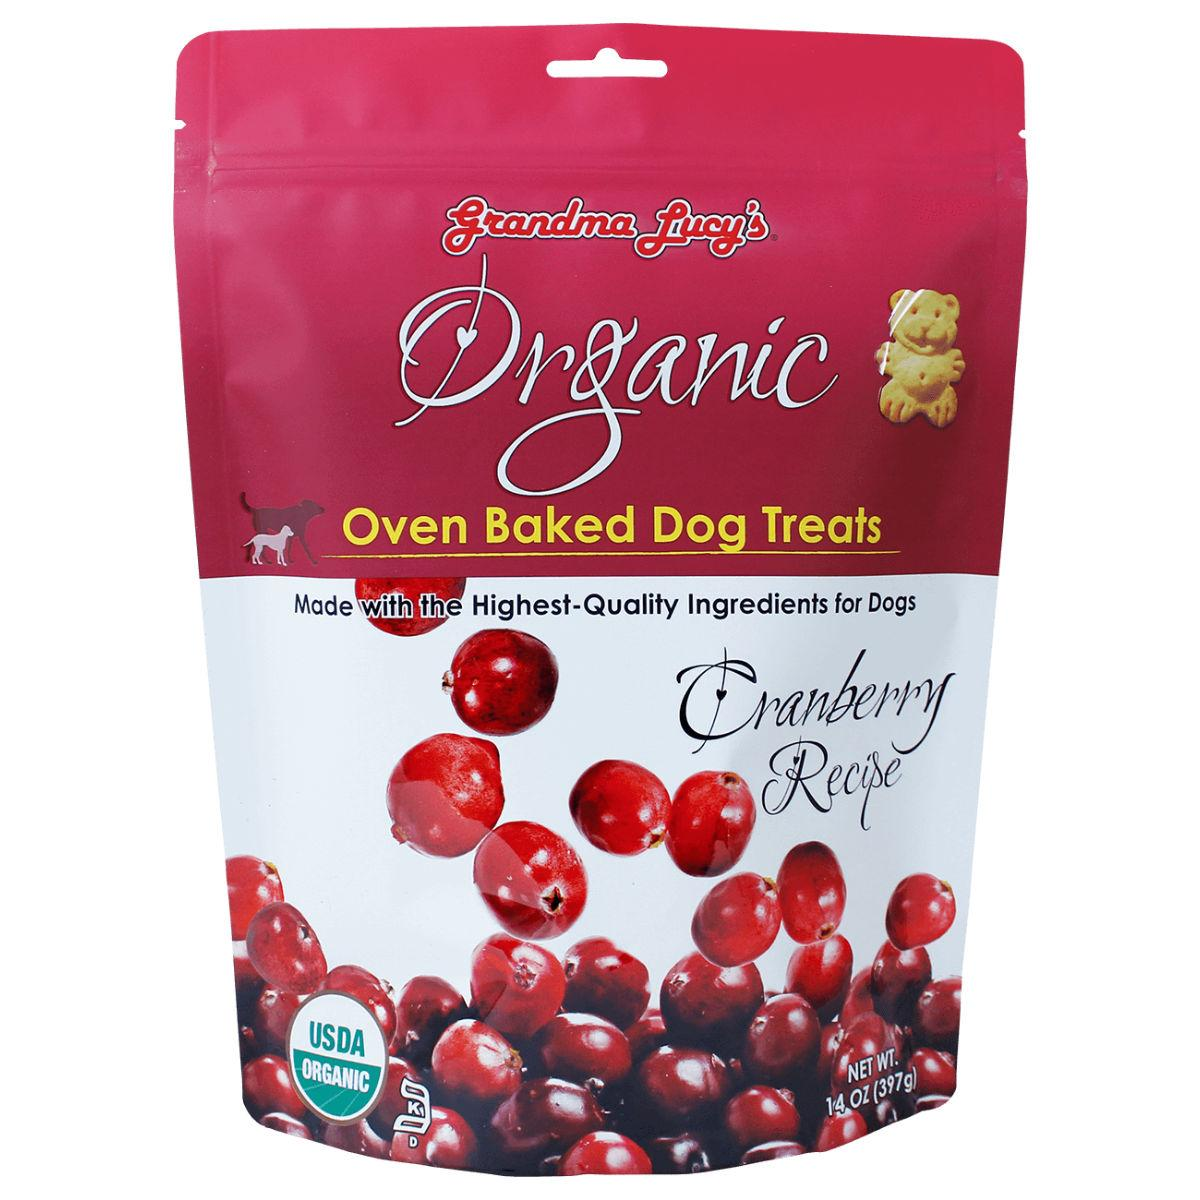 Grandma Lucy's Organic Oven Baked Dog Treat - Cranberry